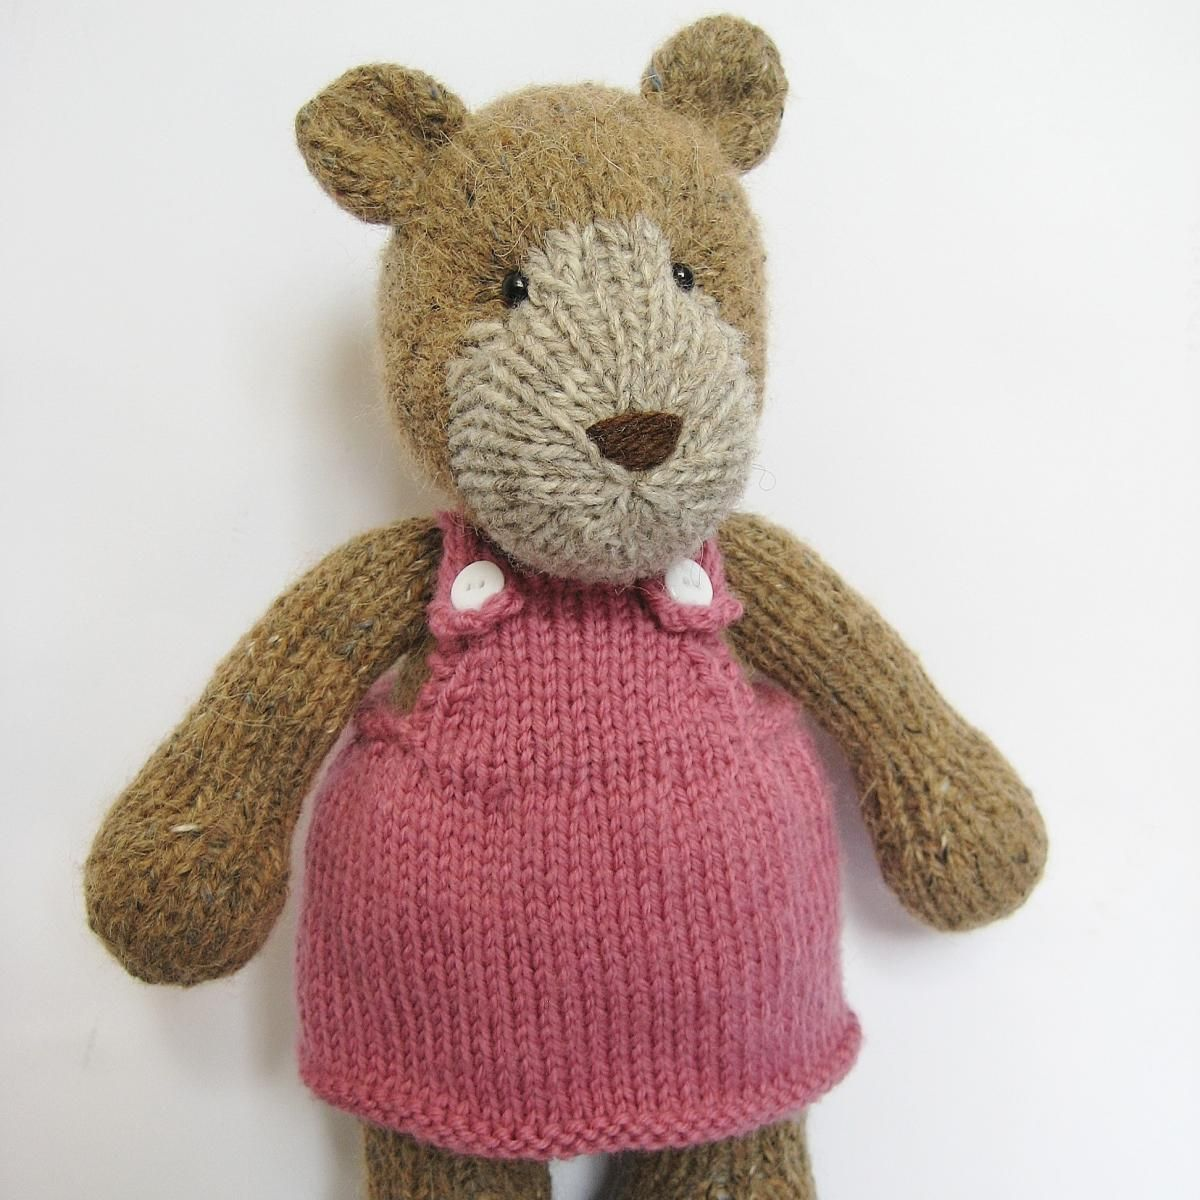 Teddy Bear toy knitting pattern | If I could knit would make this ...